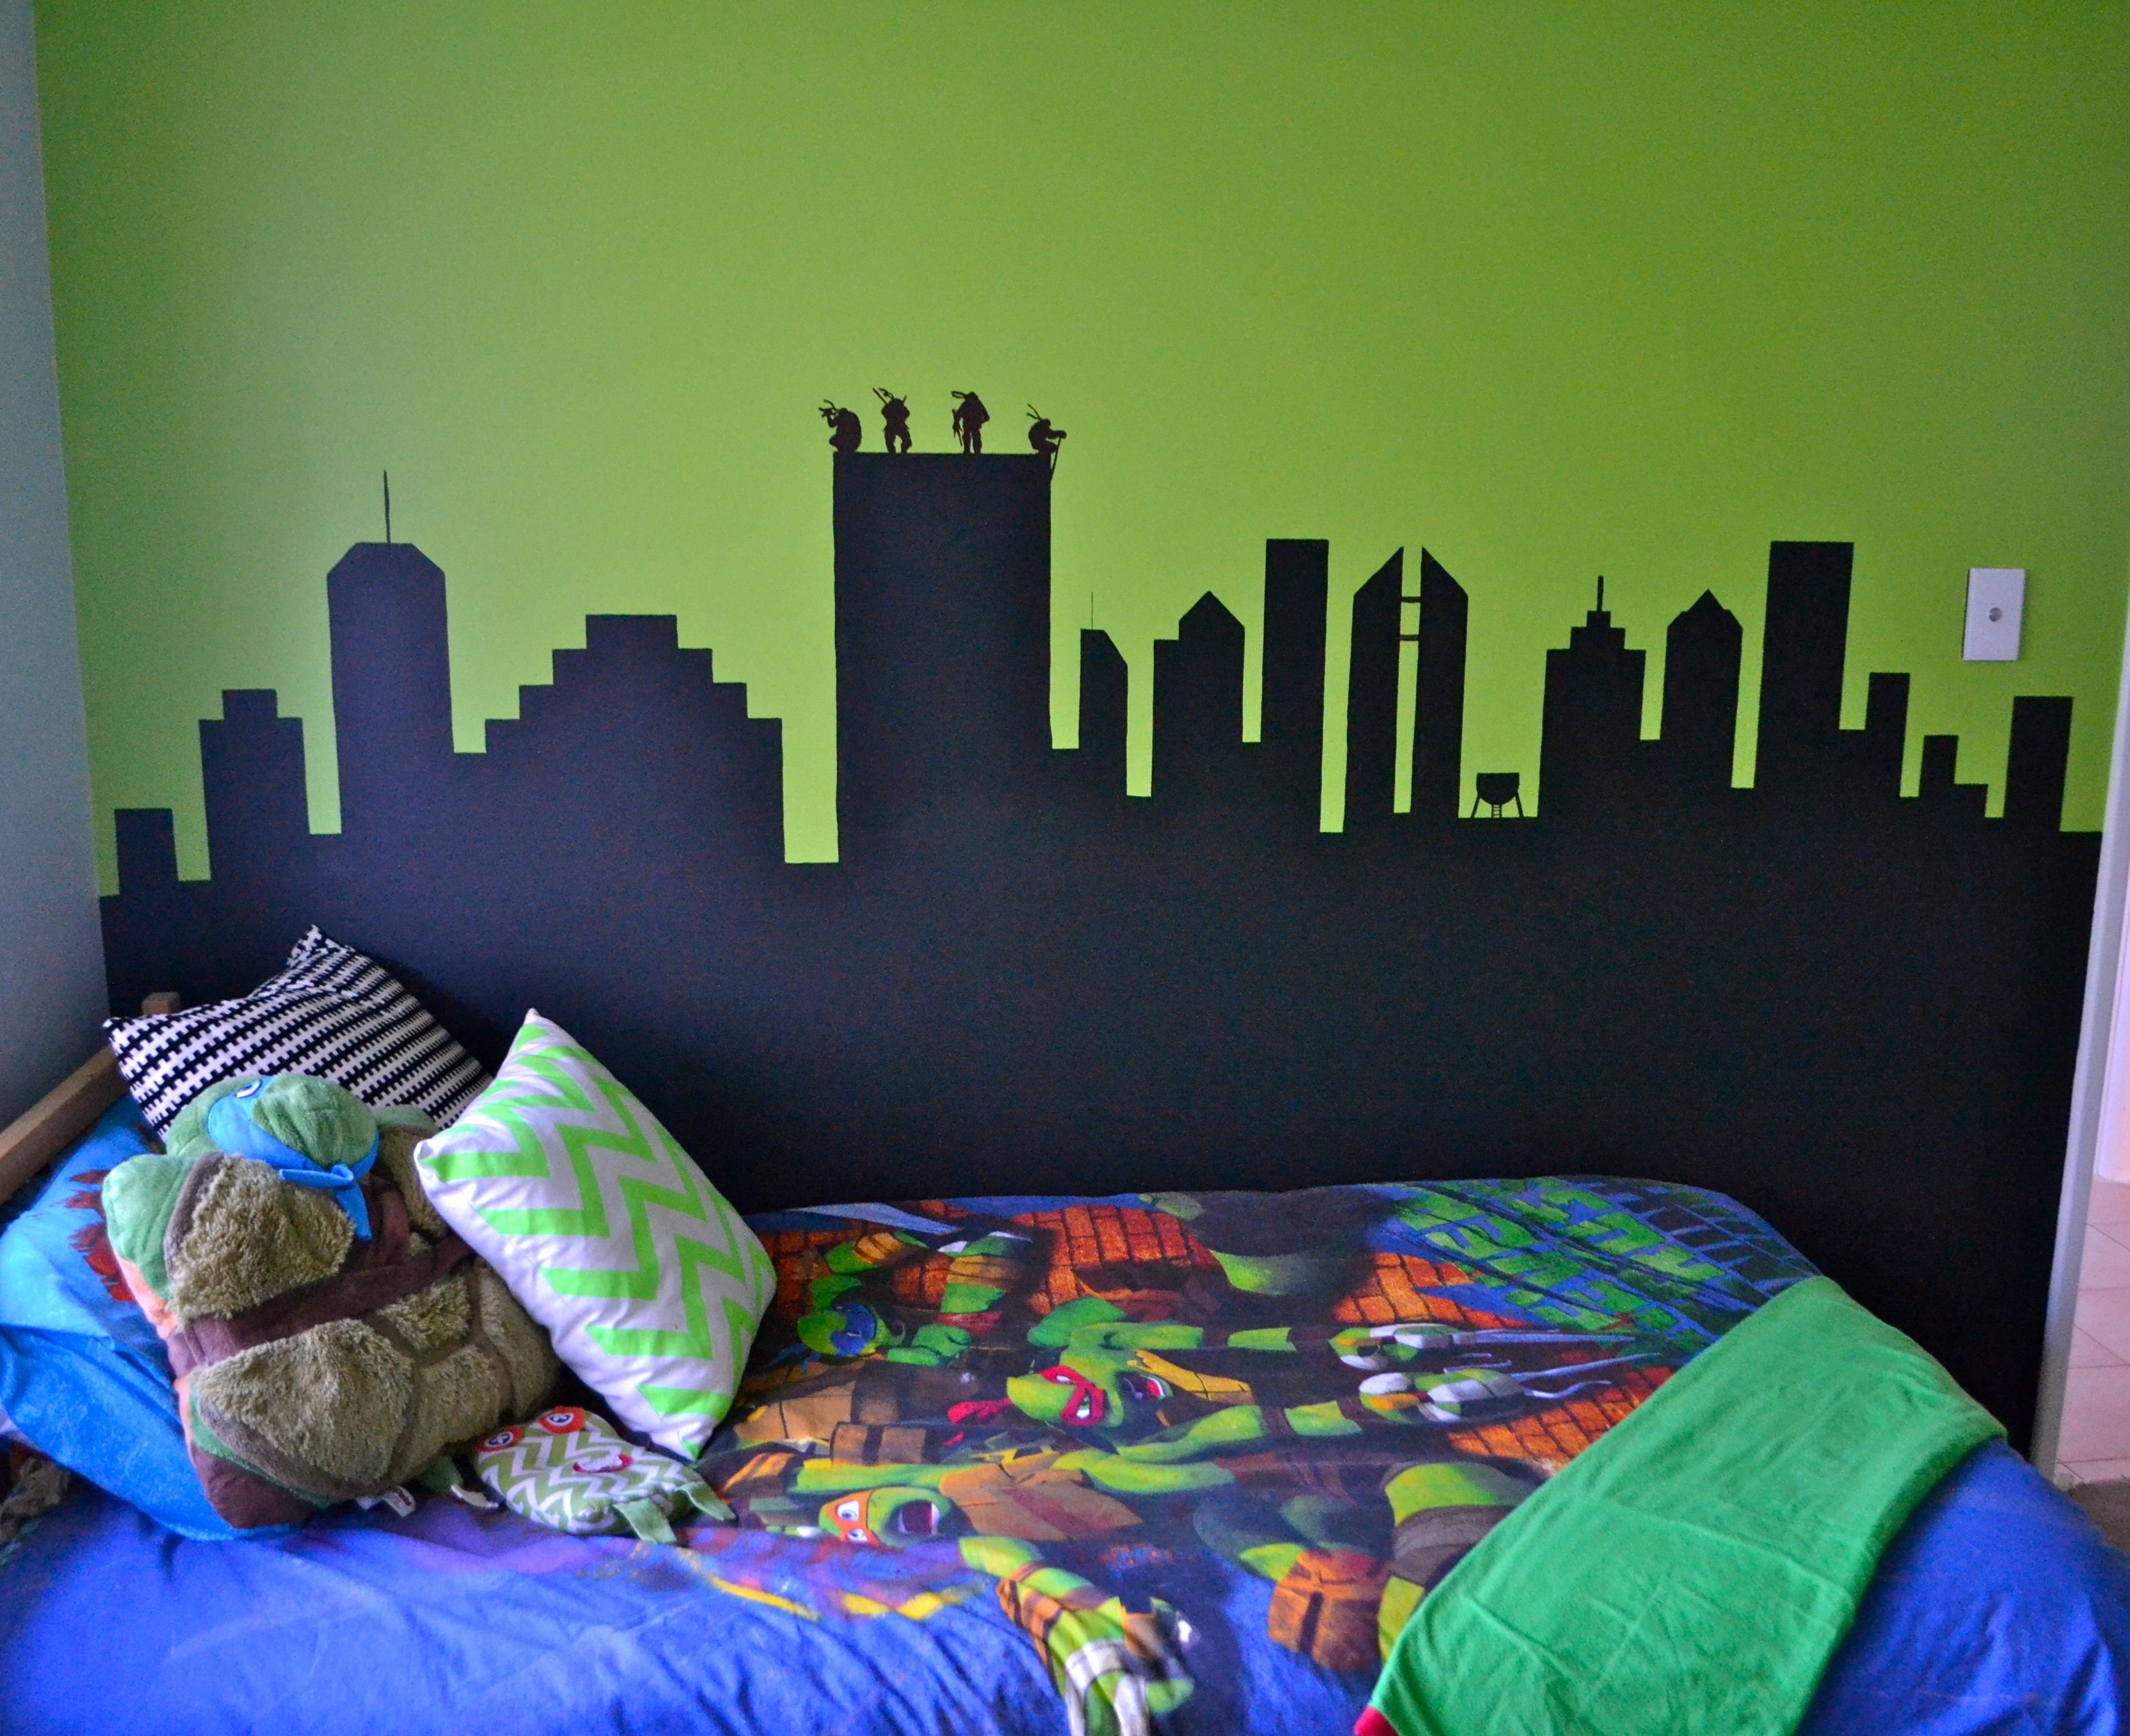 Best Tmnt And Beds On Pinterest Teenage Mutant Ninja Turtle Wall Mural At Www Thebeachbomb Com With Pictures